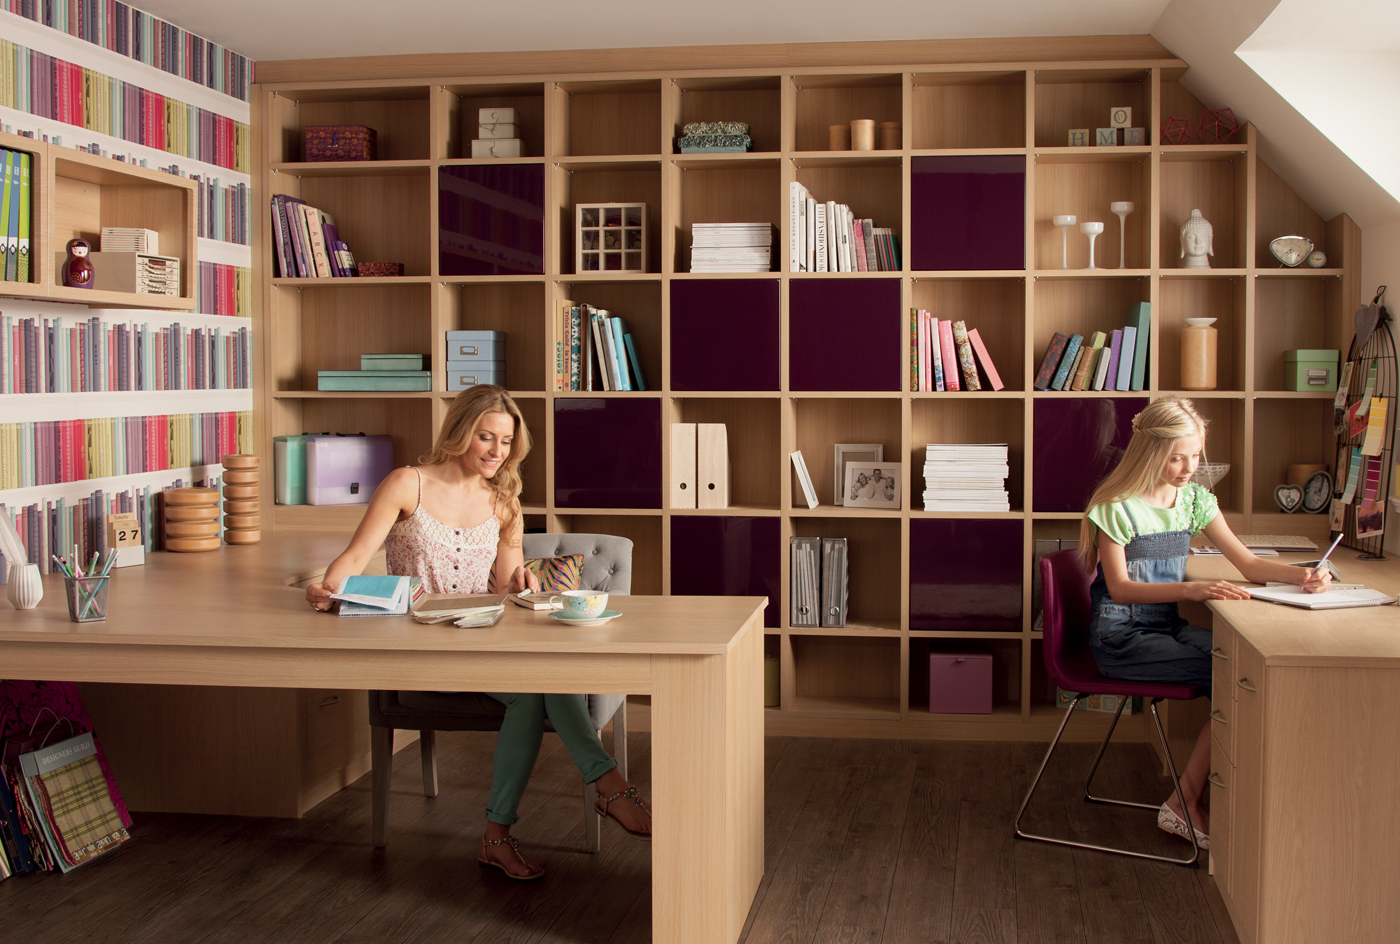 Home office furniture decoration designs guide How many hours do interior designers work